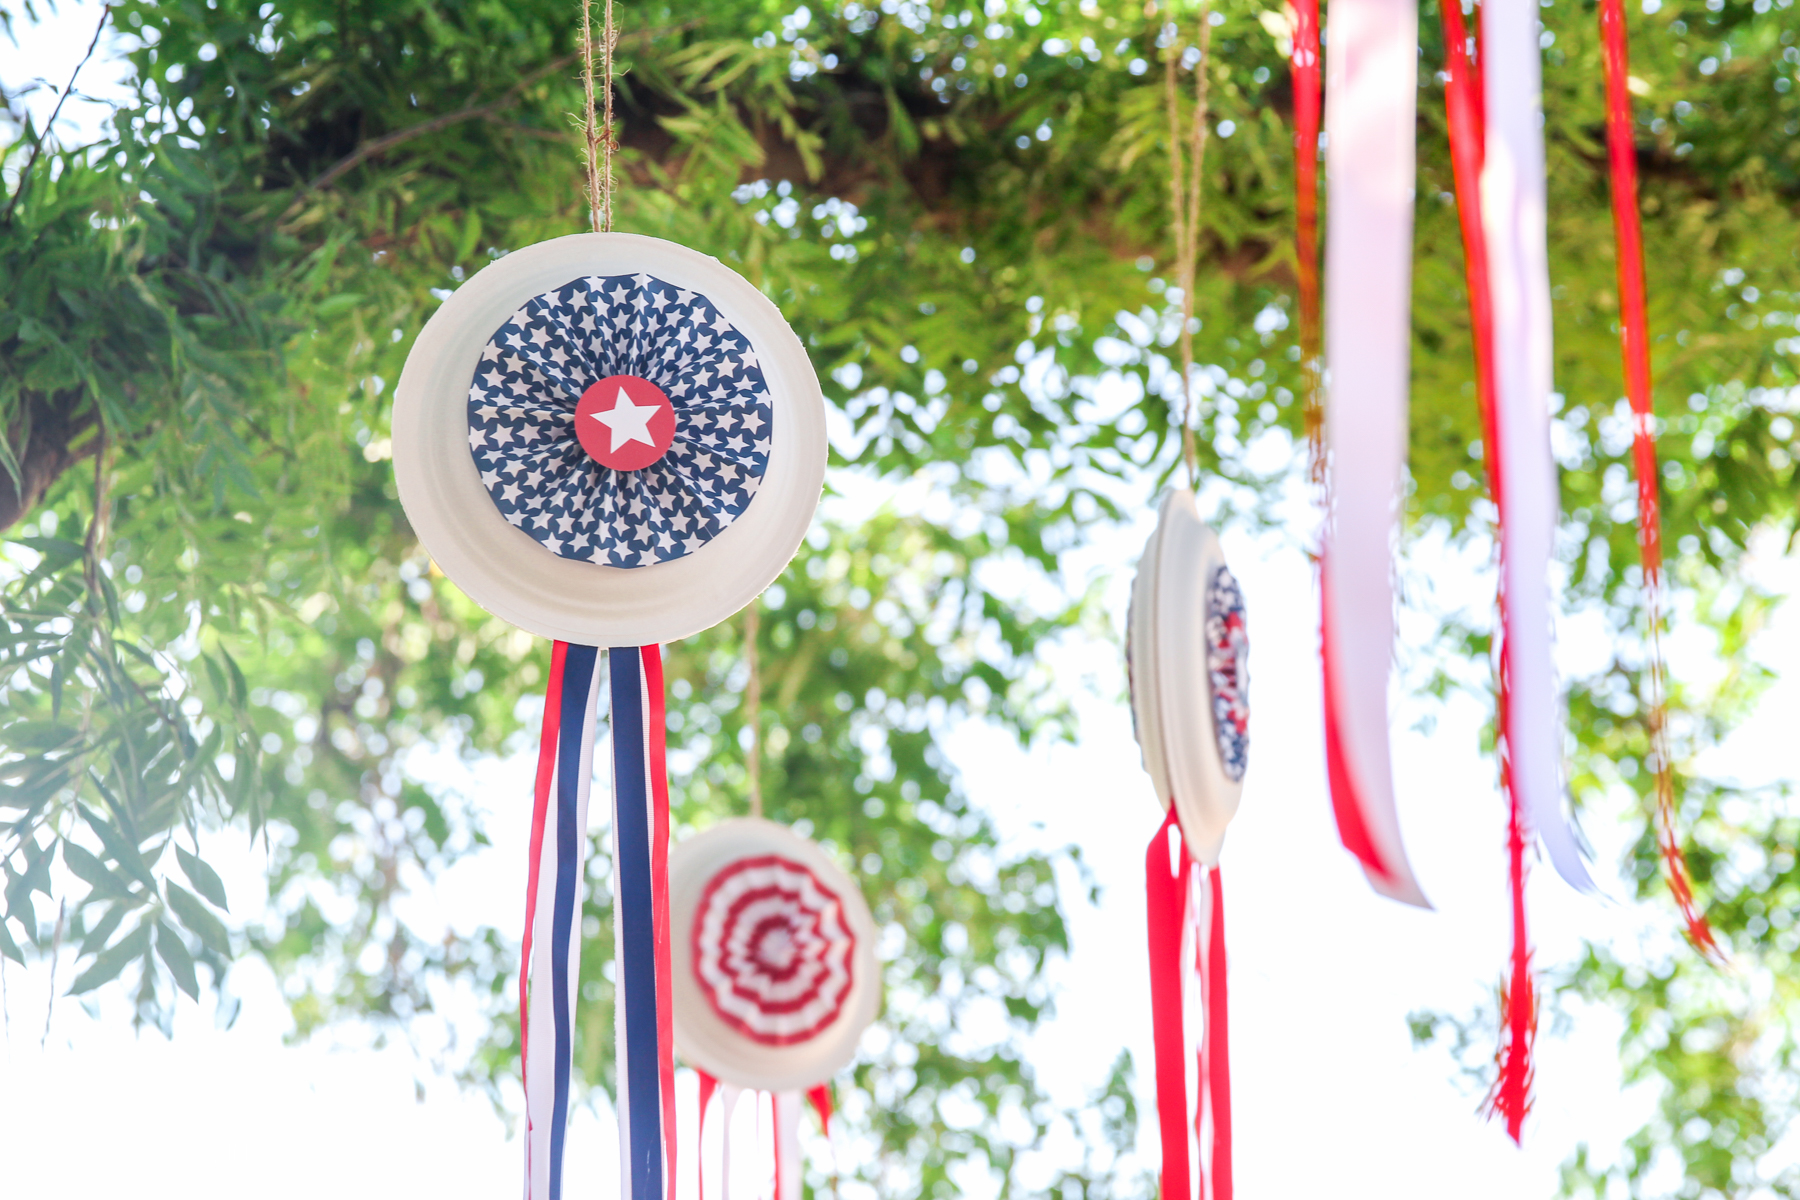 Those are PAPER PLATES! Don't miss these Cheap & Easy July 4th Decor ideas w/ FREE printable templates from @PagingSupermom